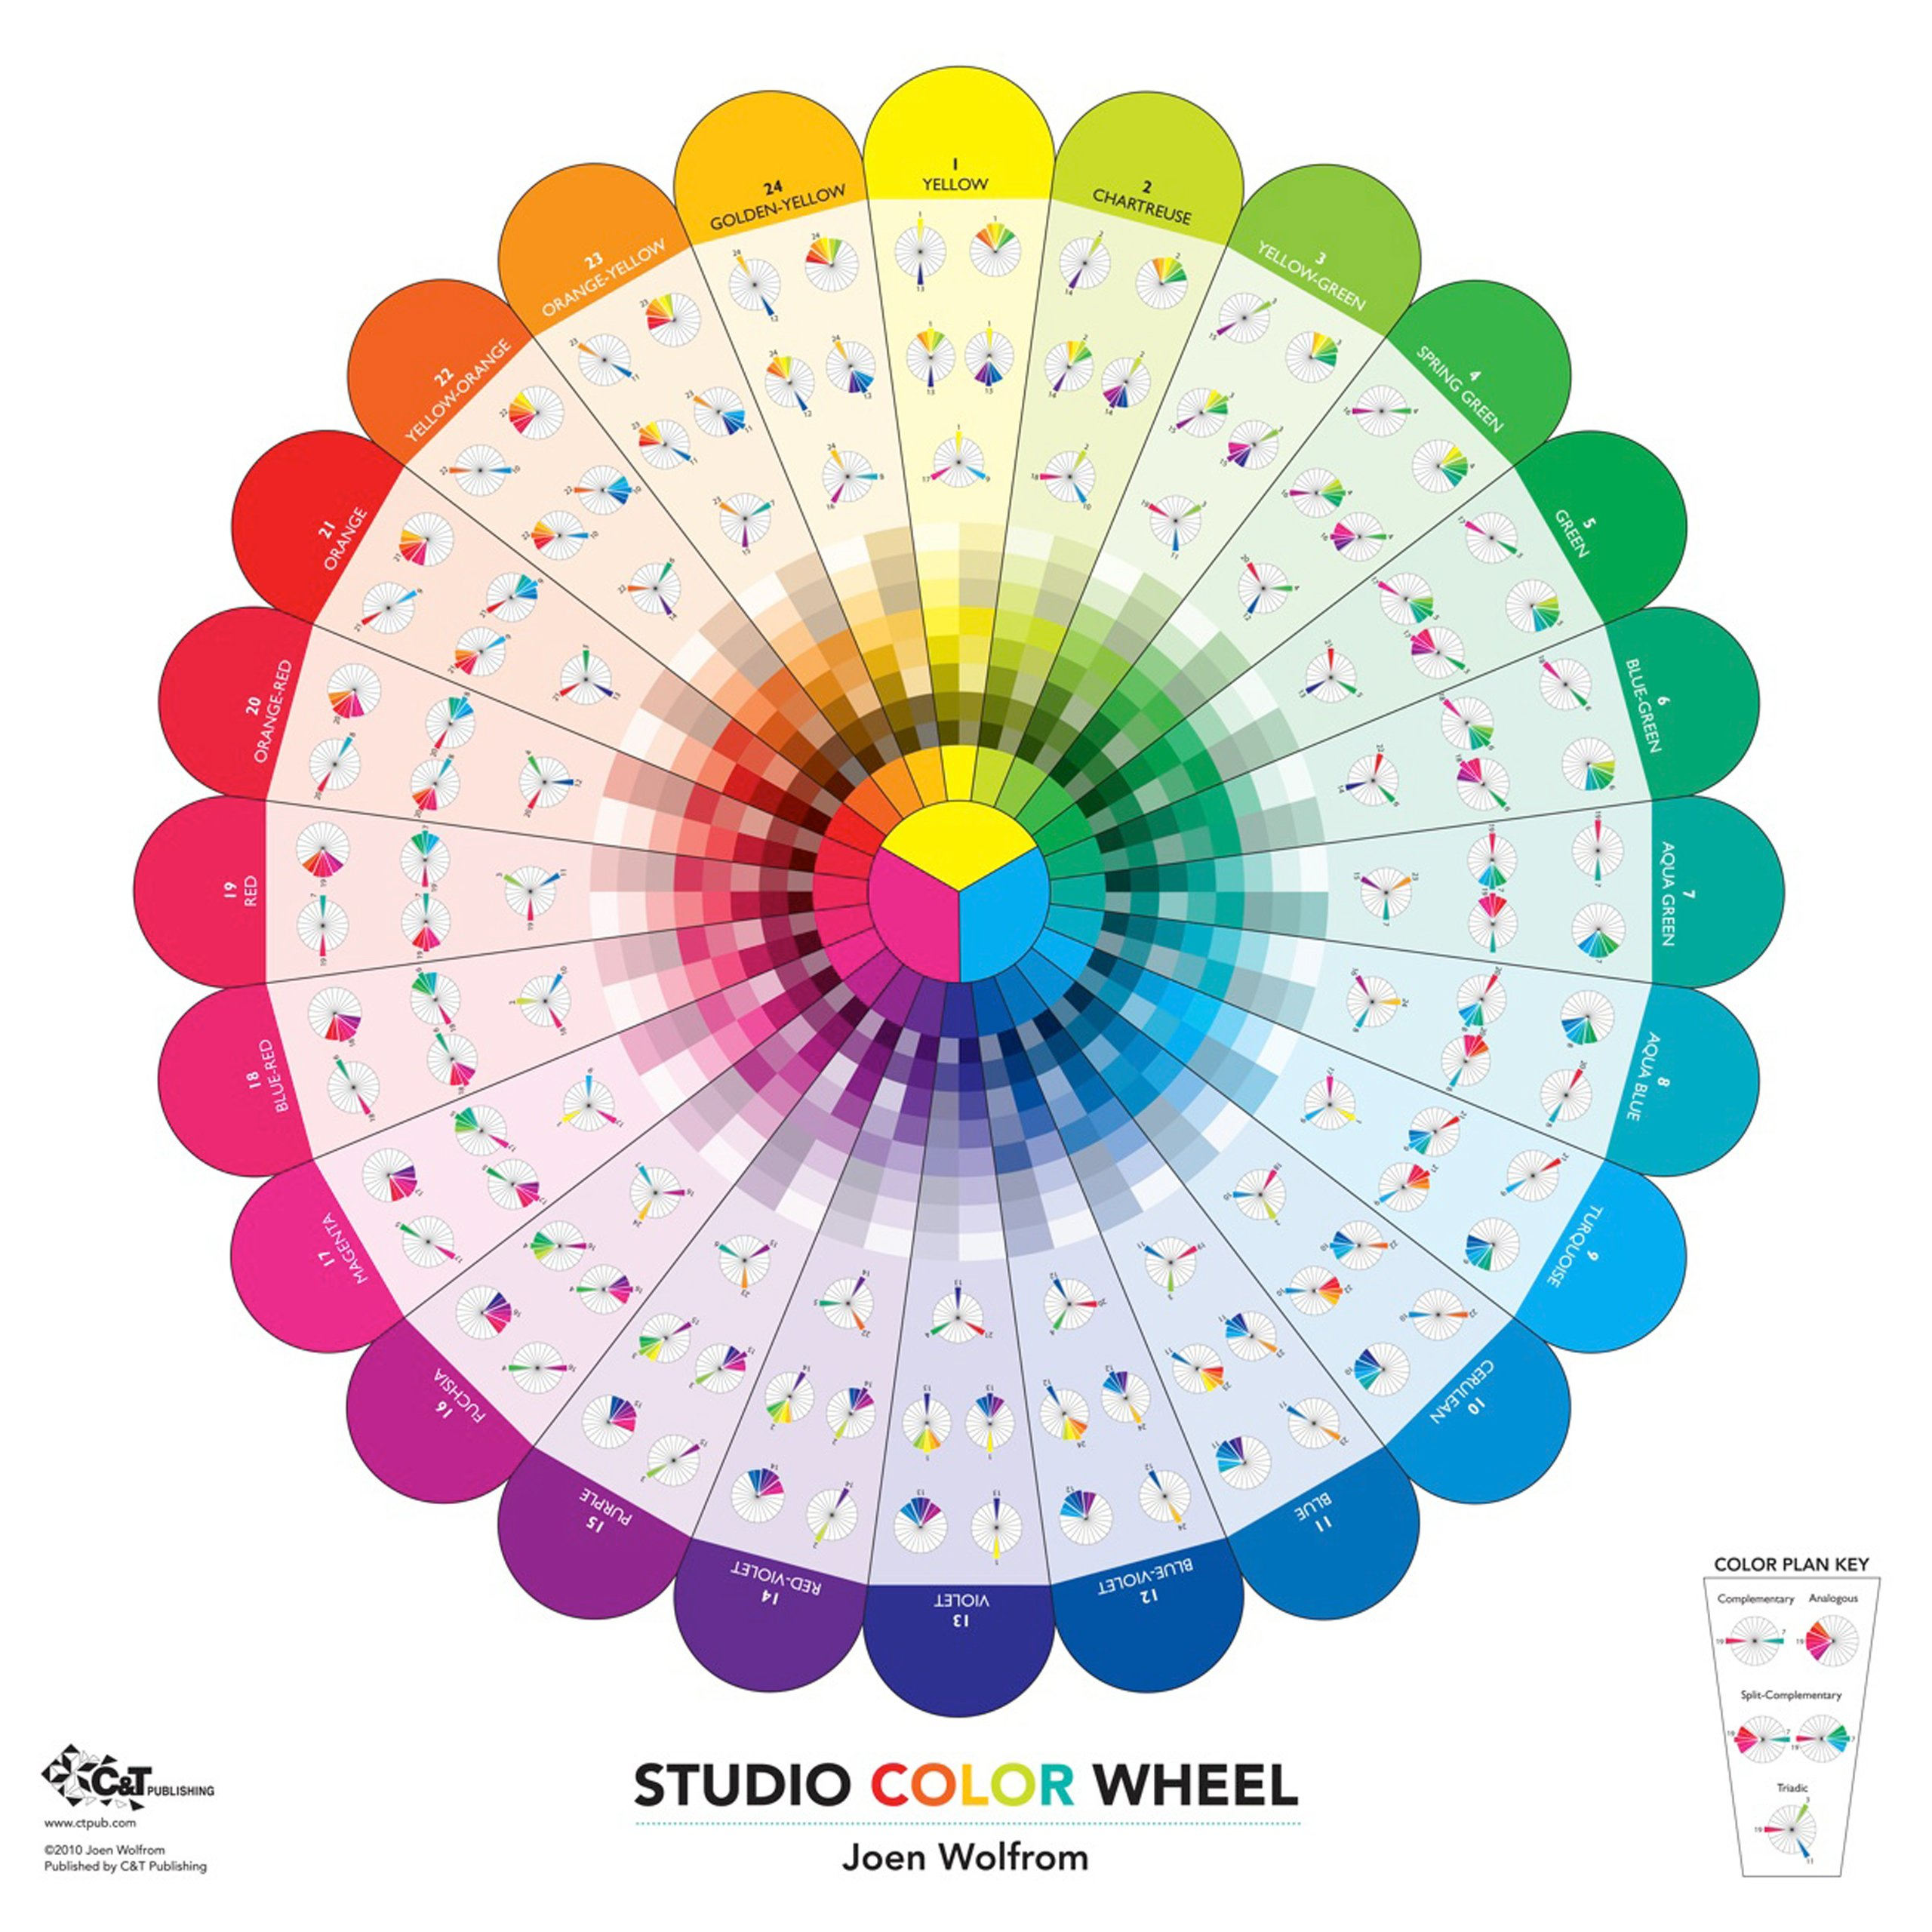 Color circle art publishing - Studio Color Wheel 28 X 28 Double Sided Poster Joen Wolfrom 9781607053507 Amazon Com Books